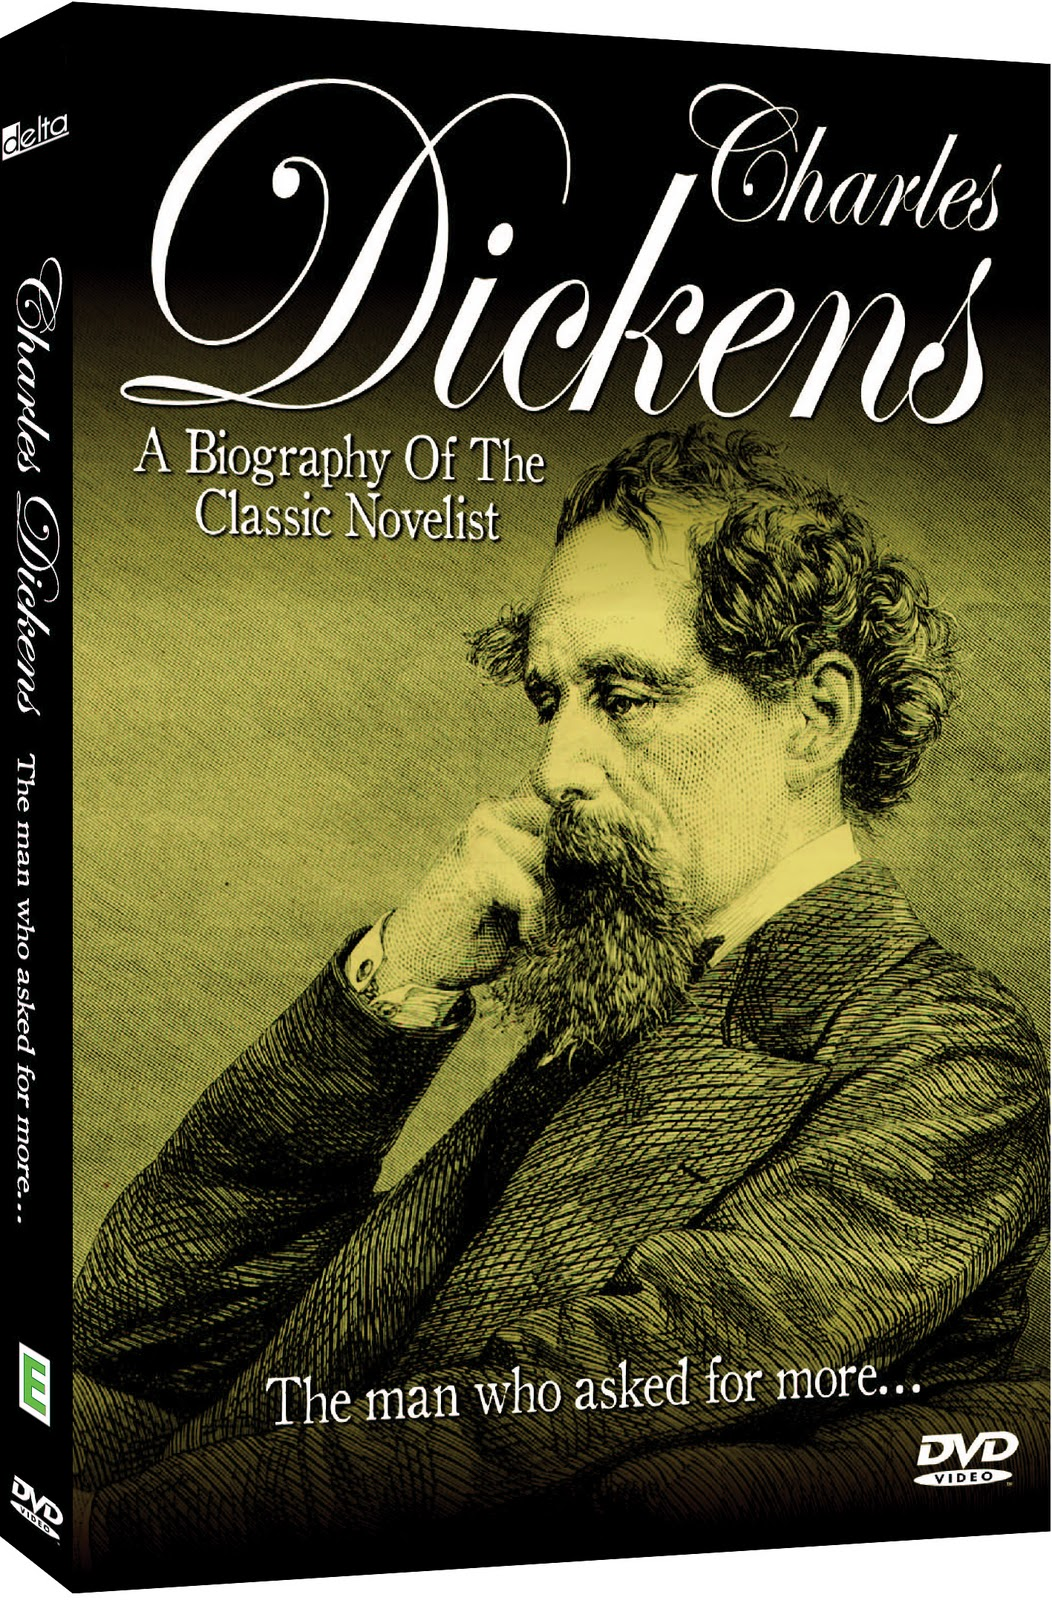 the social corruption in oliver twist Charles dickens as social commentator  oliver twist completed in 1839,  dickens takes on issues of electoral corruption, class division,.